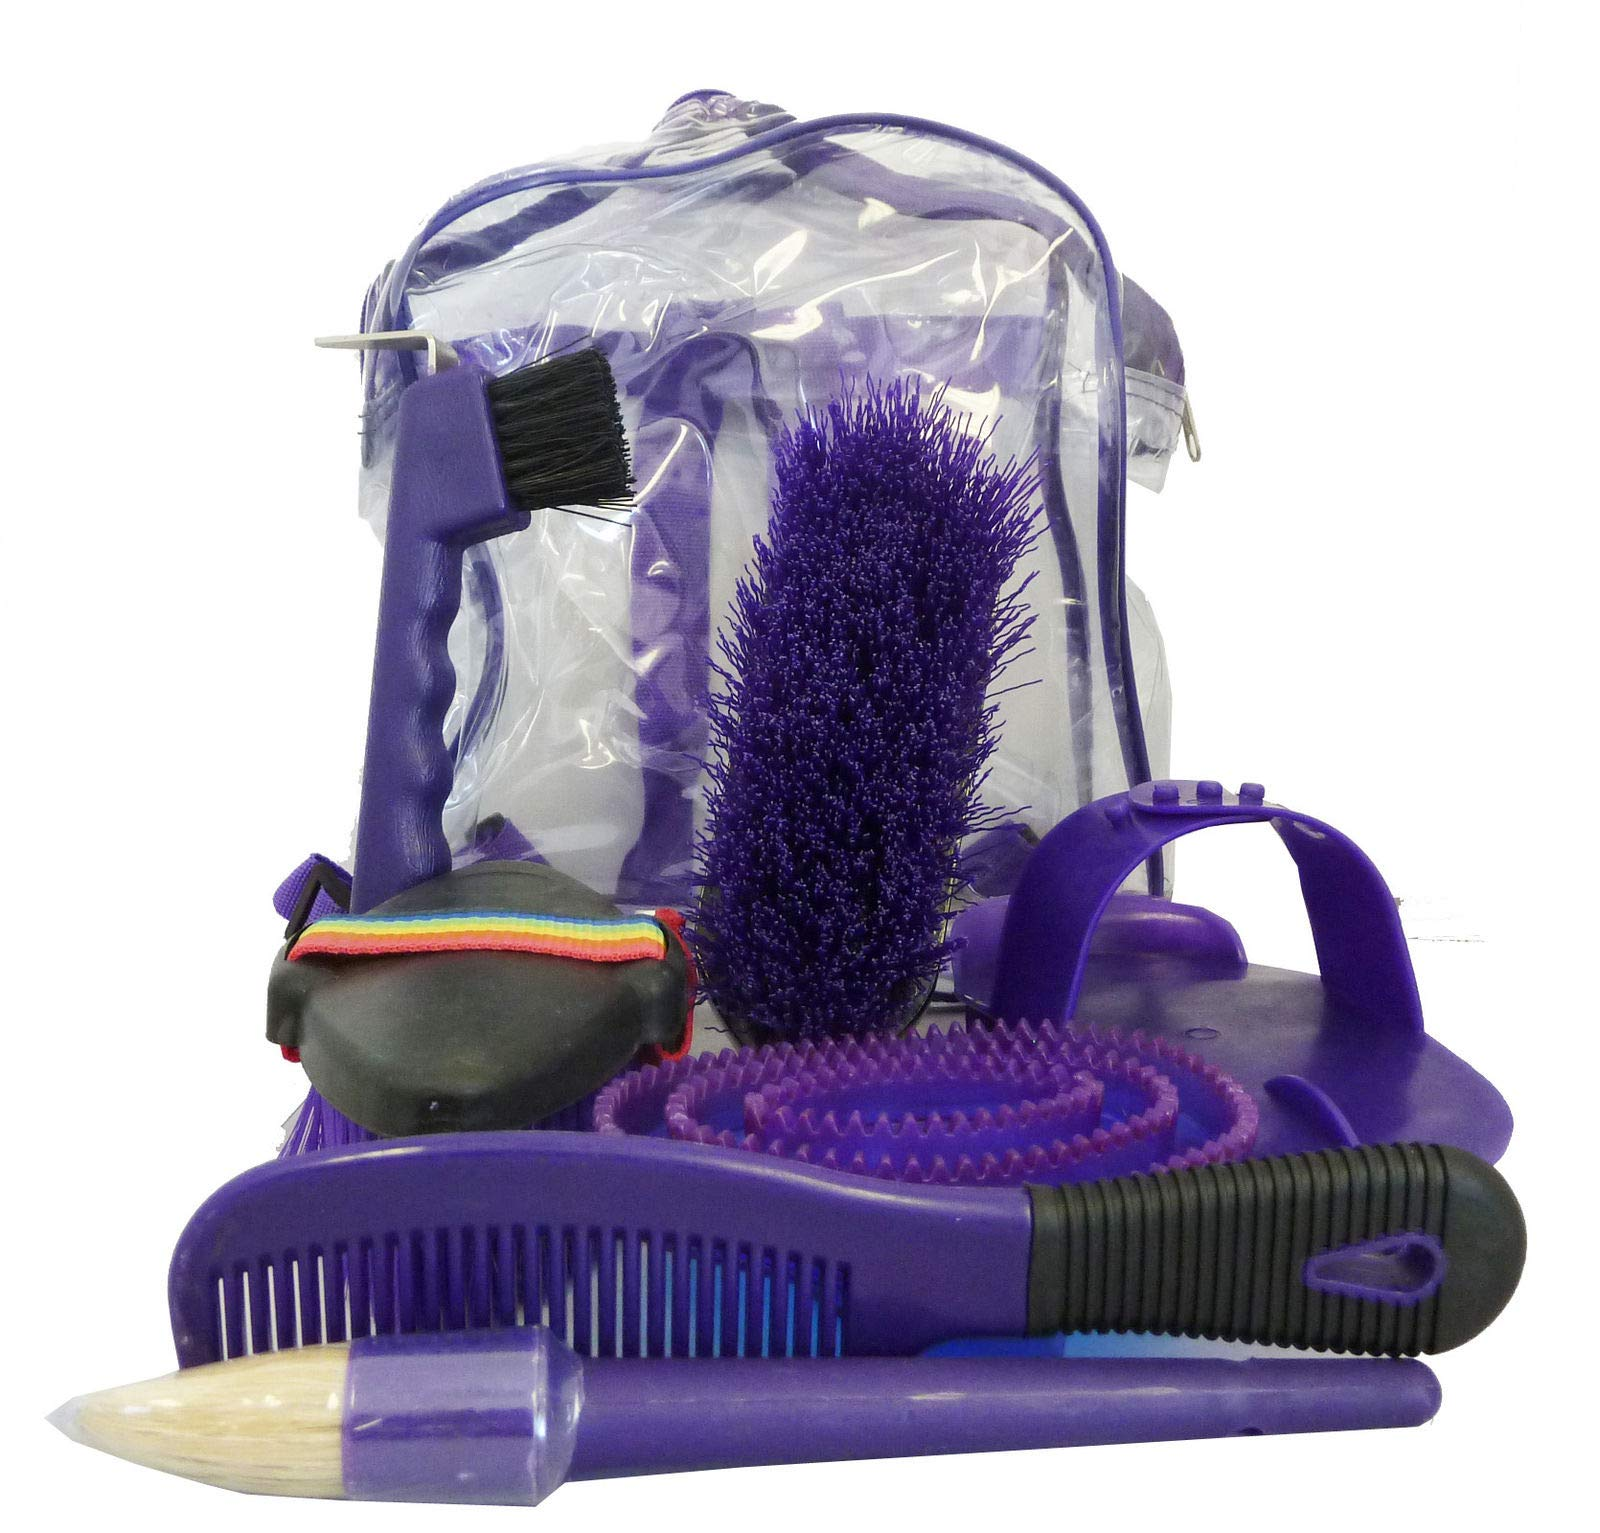 AJ Tack Wholesale Horse Grooming Kit Set 8 Pieces Barn Stable Supply Brushes Comb Hoof Pick Purple by AJ Tack Wholesale